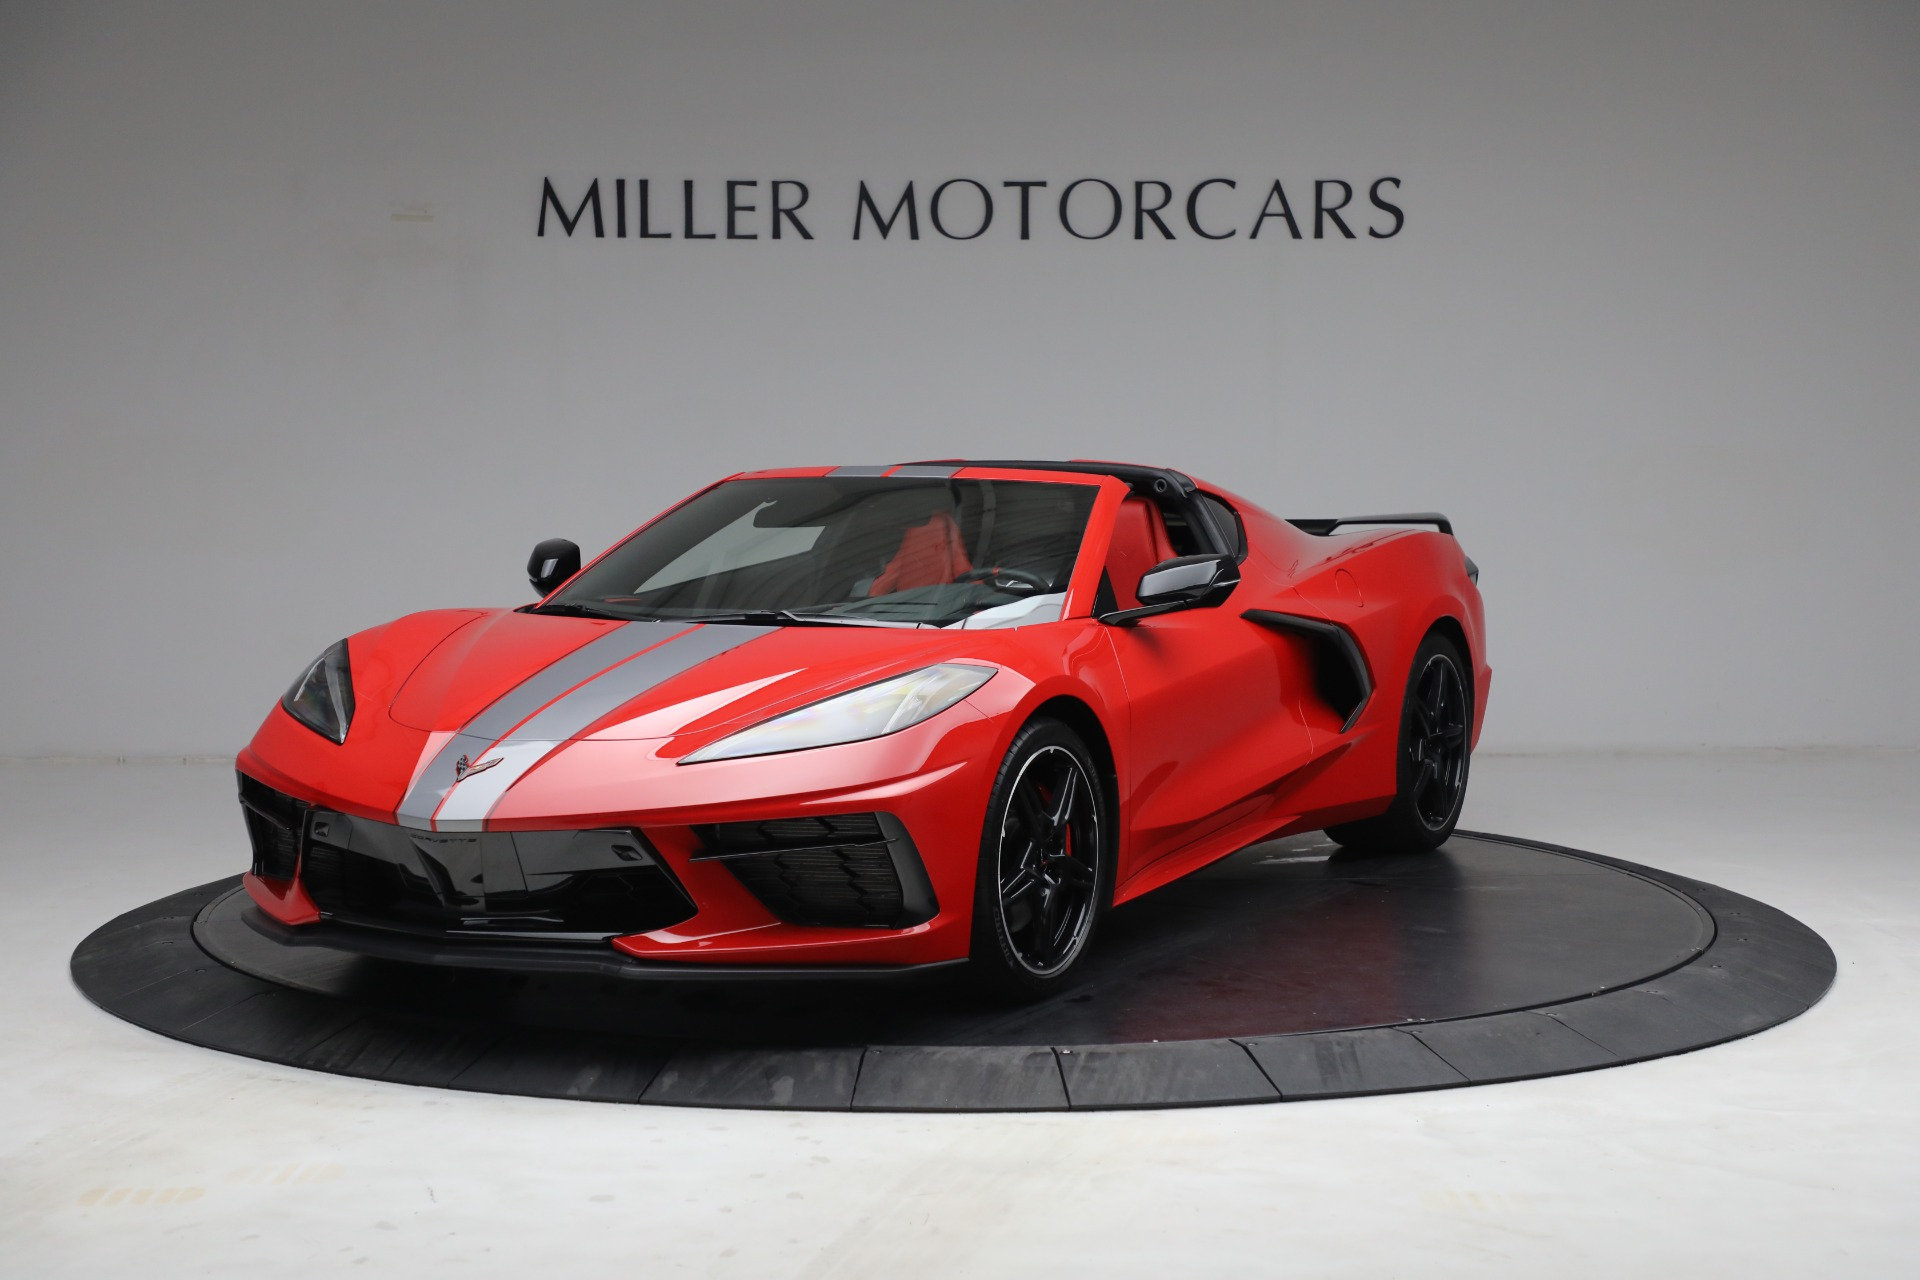 Used 2020 Chevrolet Corvette Stingray for sale Sold at Pagani of Greenwich in Greenwich CT 06830 1